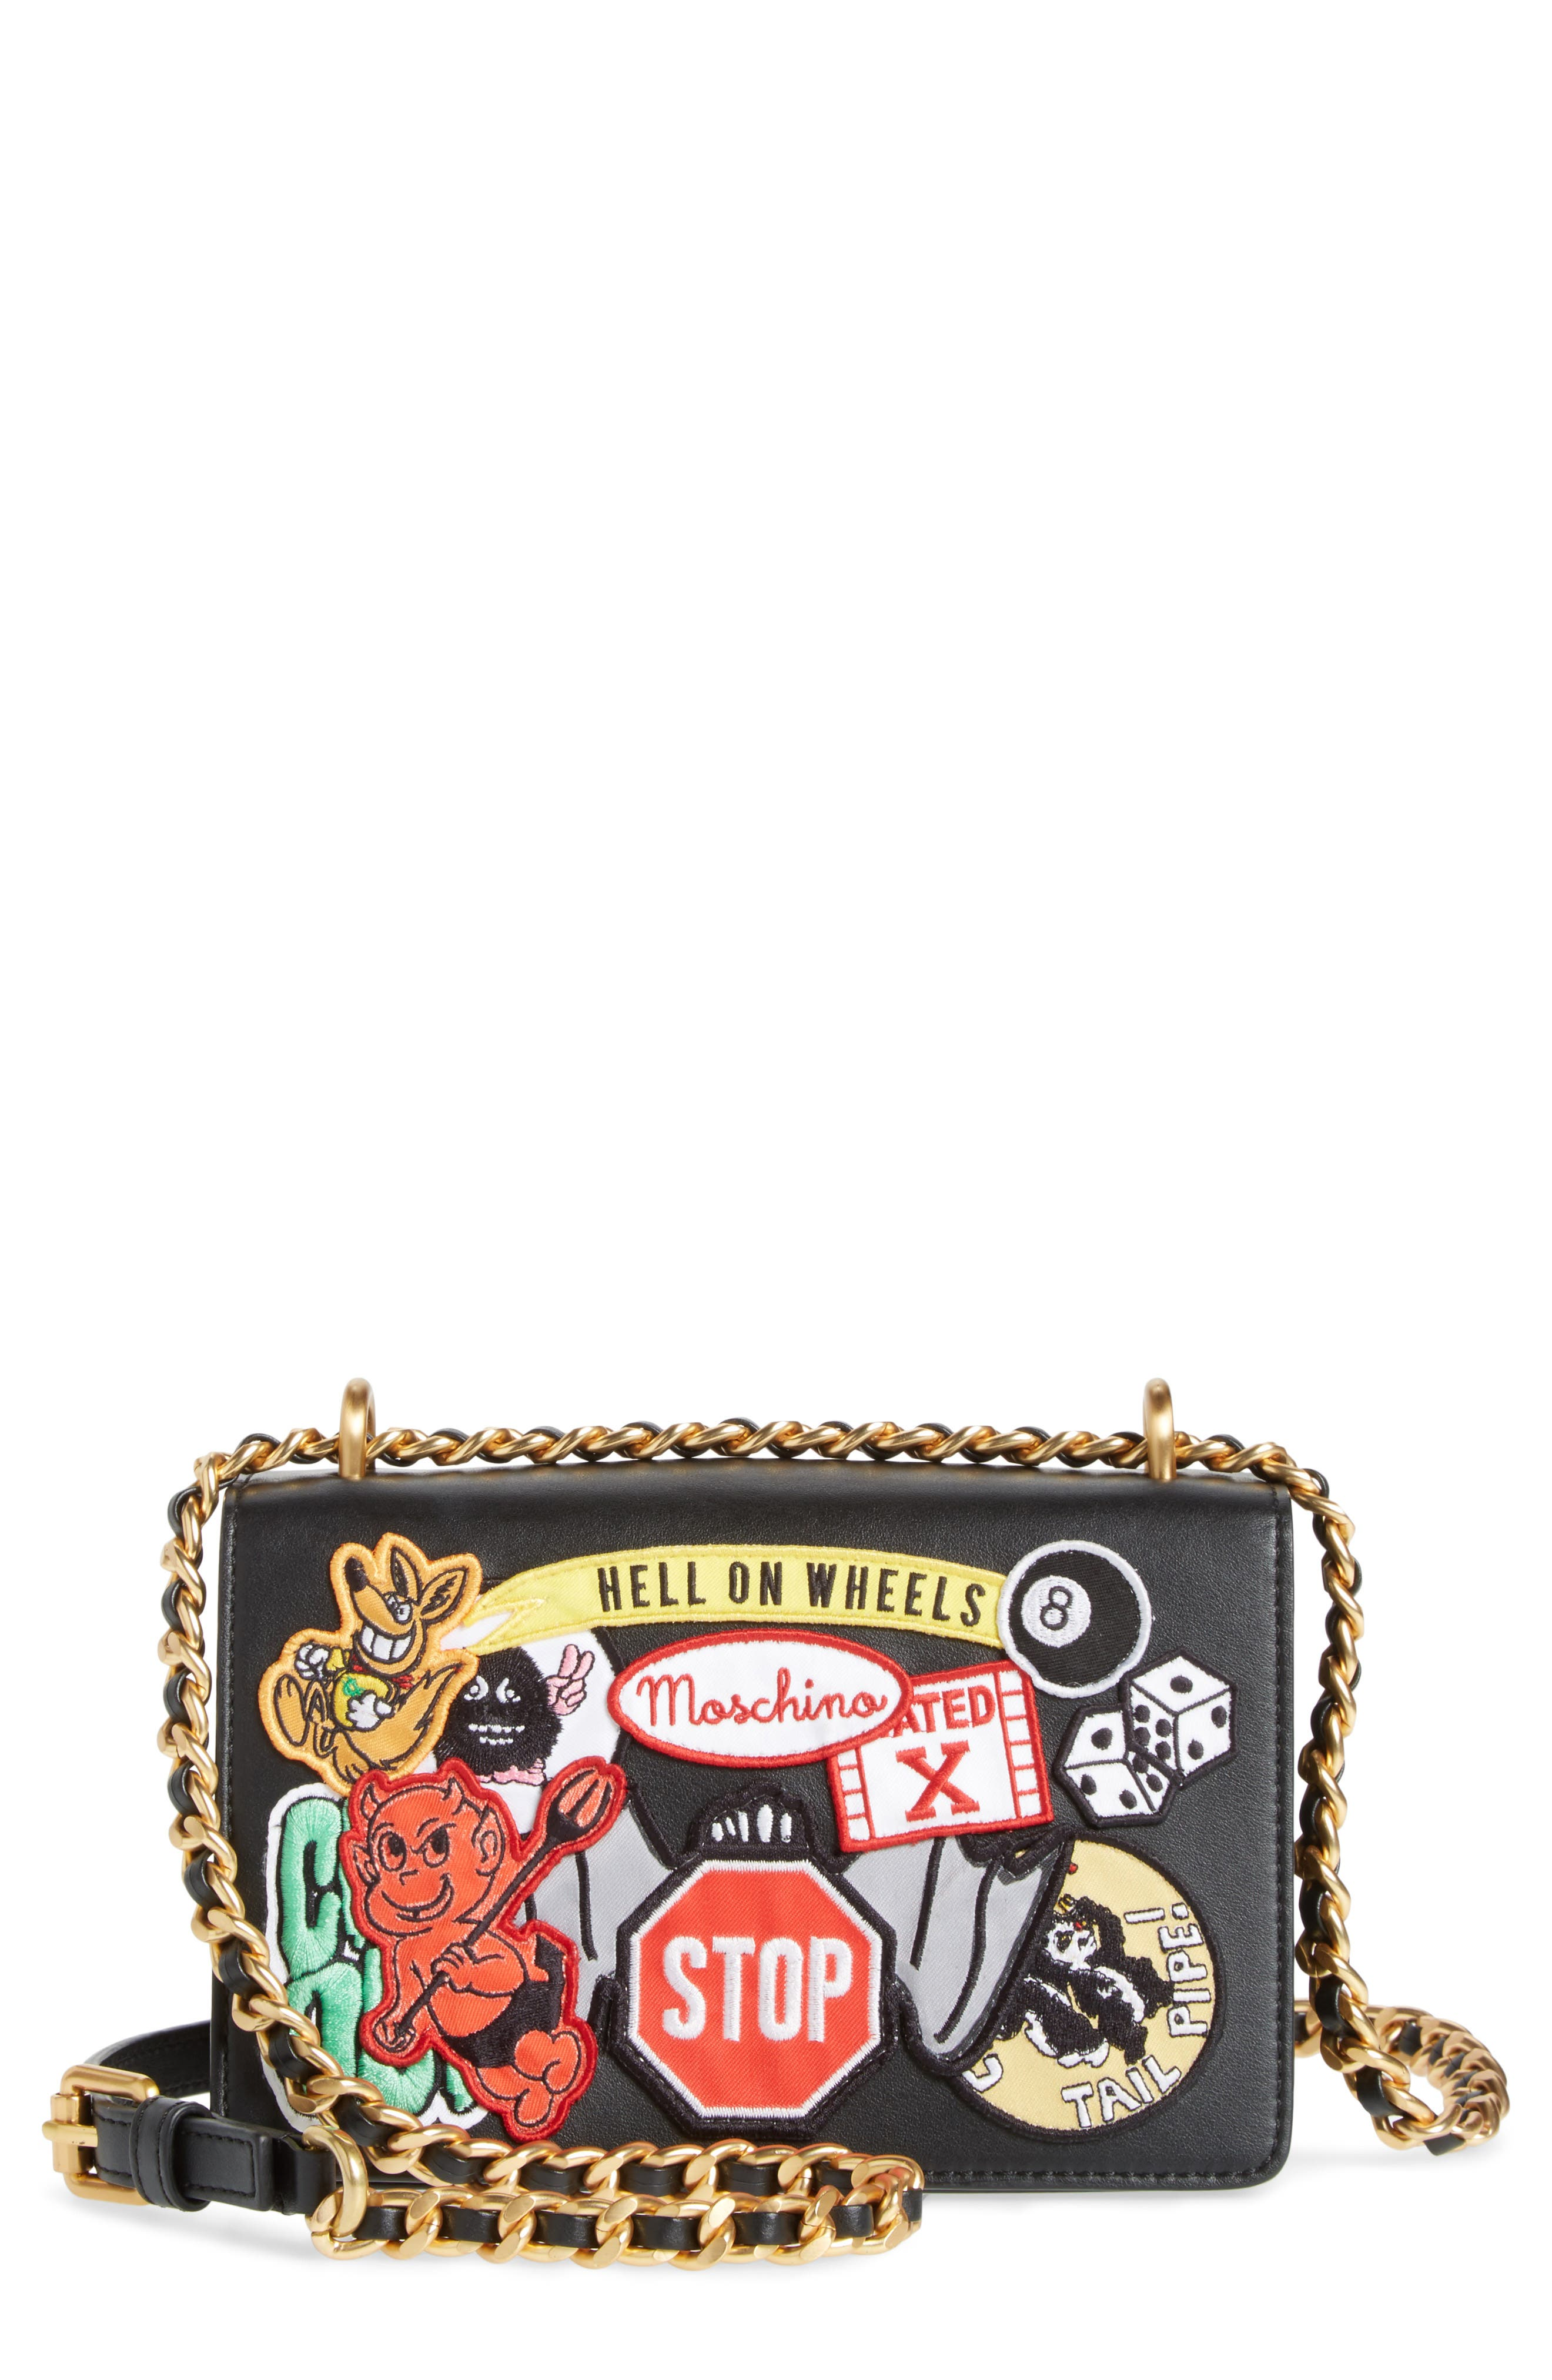 Main Image - Moschino Multi Patch Leather Chain Shoulder Bag